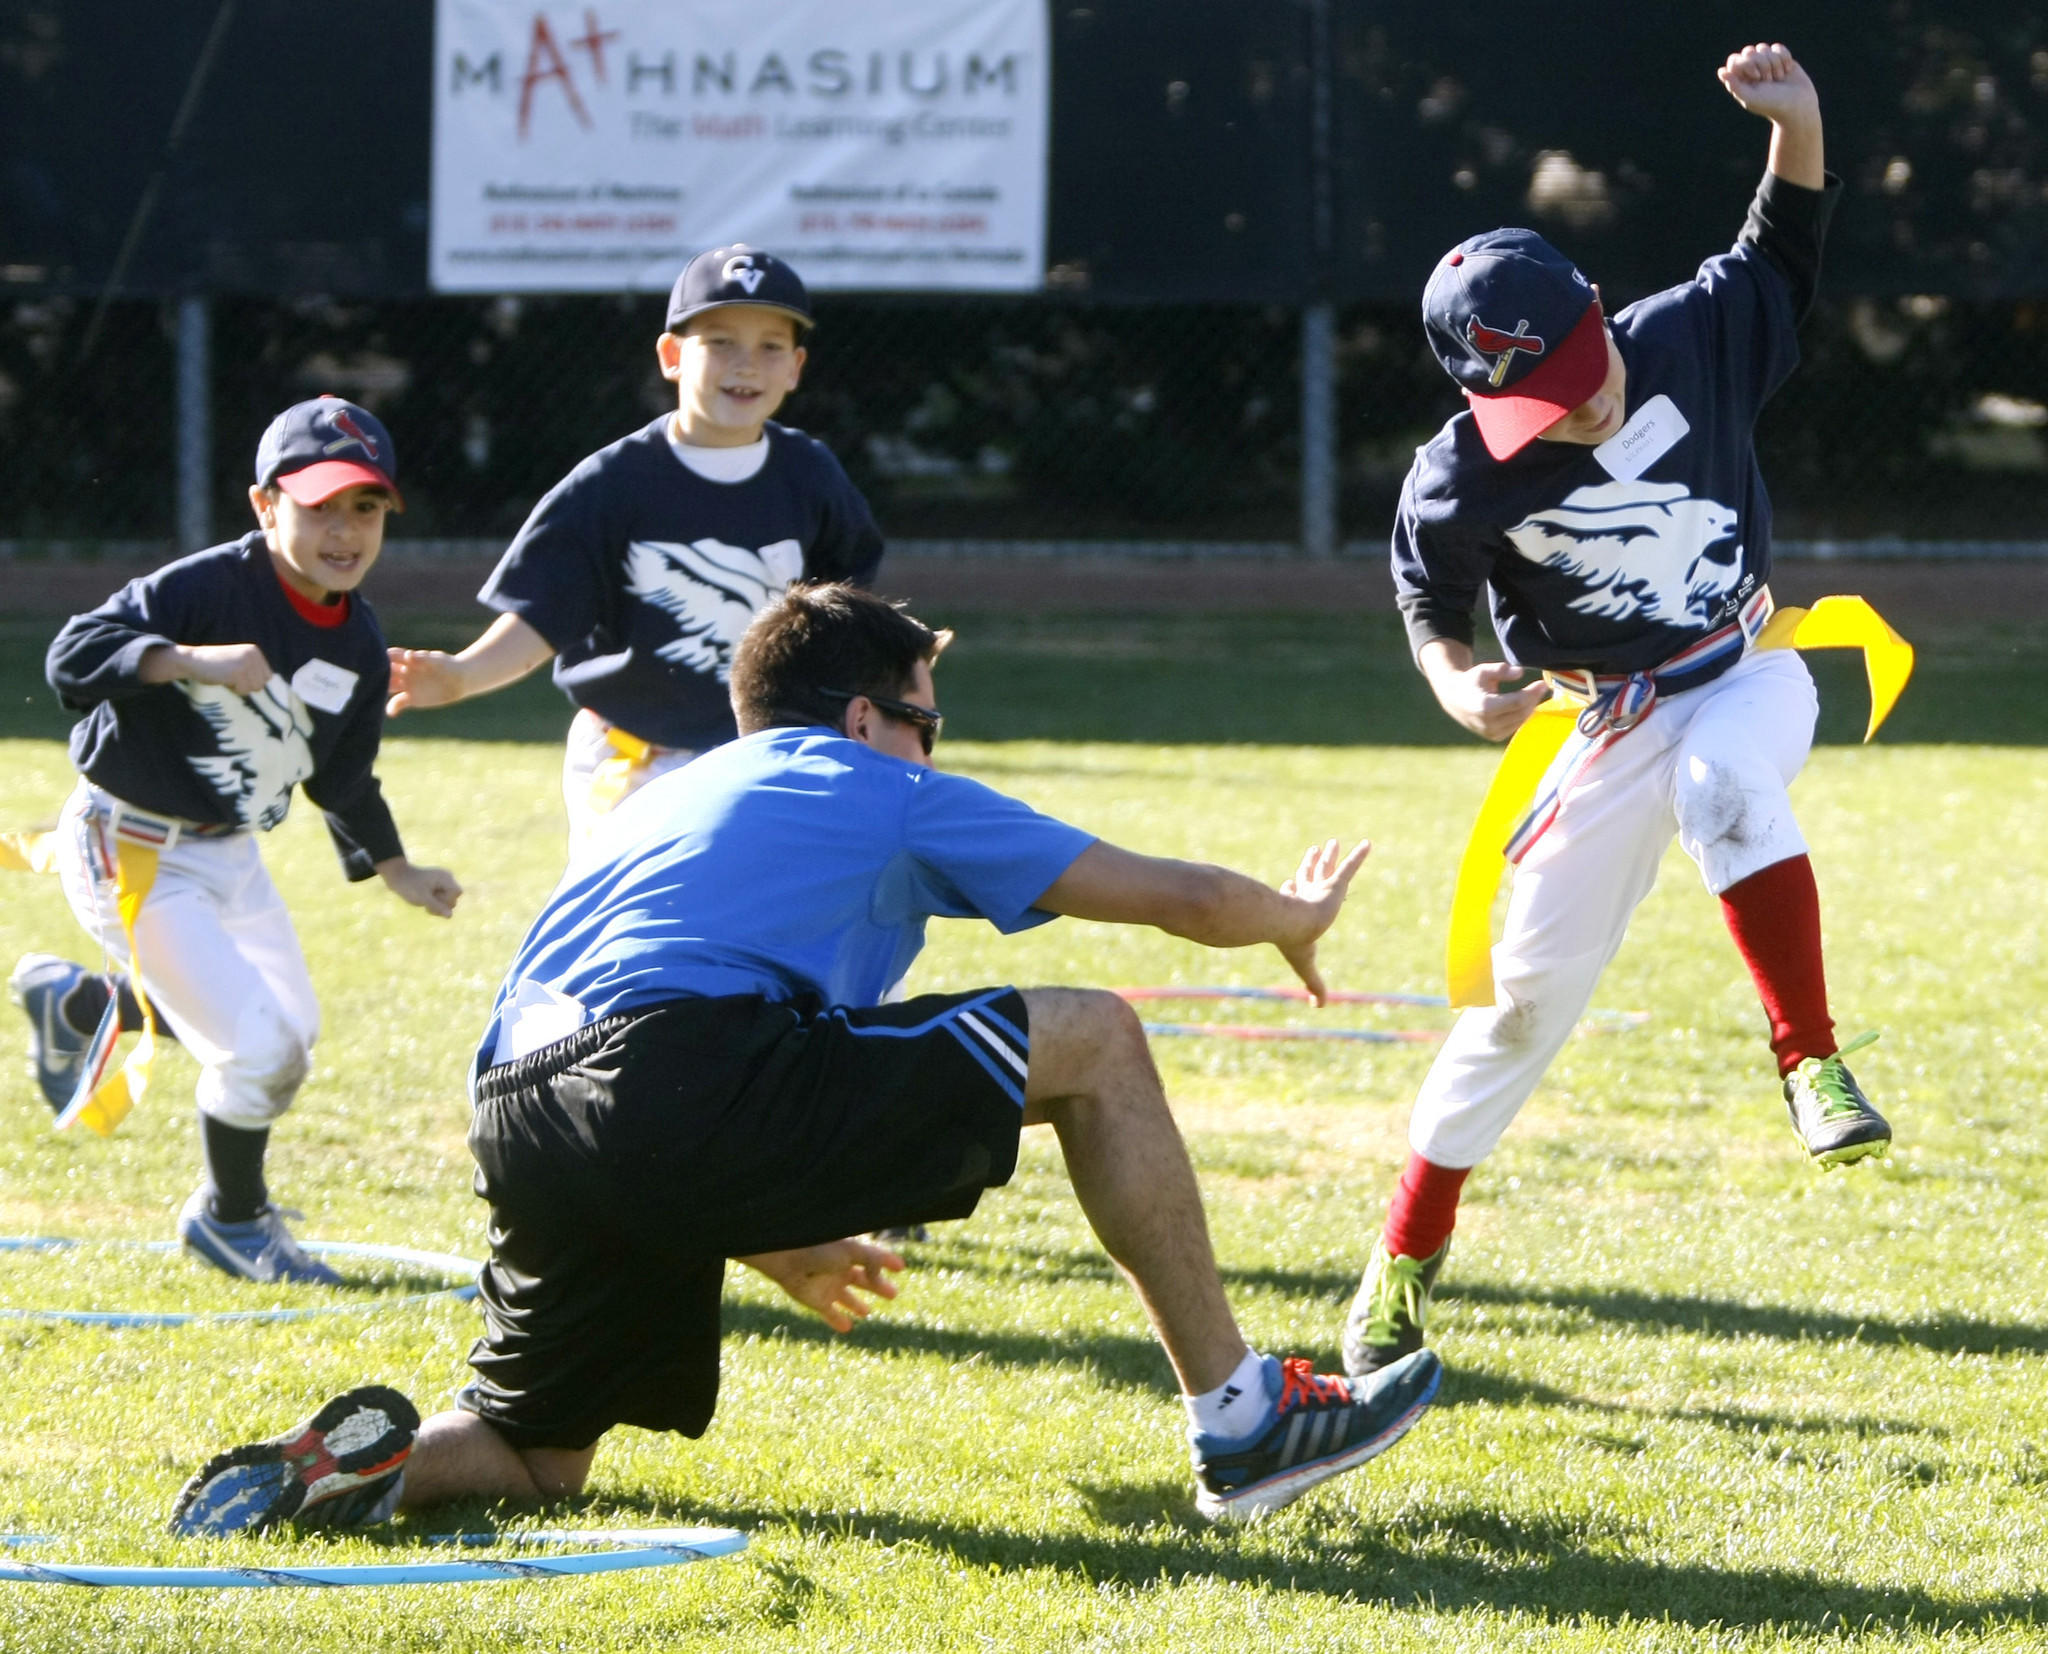 Nicholas Boghossian, 9, right, tries to avoid a coach's grab in flag tag at the annual Falcon Winter Baseball Camp at Stengel Field in Glendale on Thursday, Dec. 26, 2013. Crescenta Valley High School baseball coach Phil Torres runs the camp.